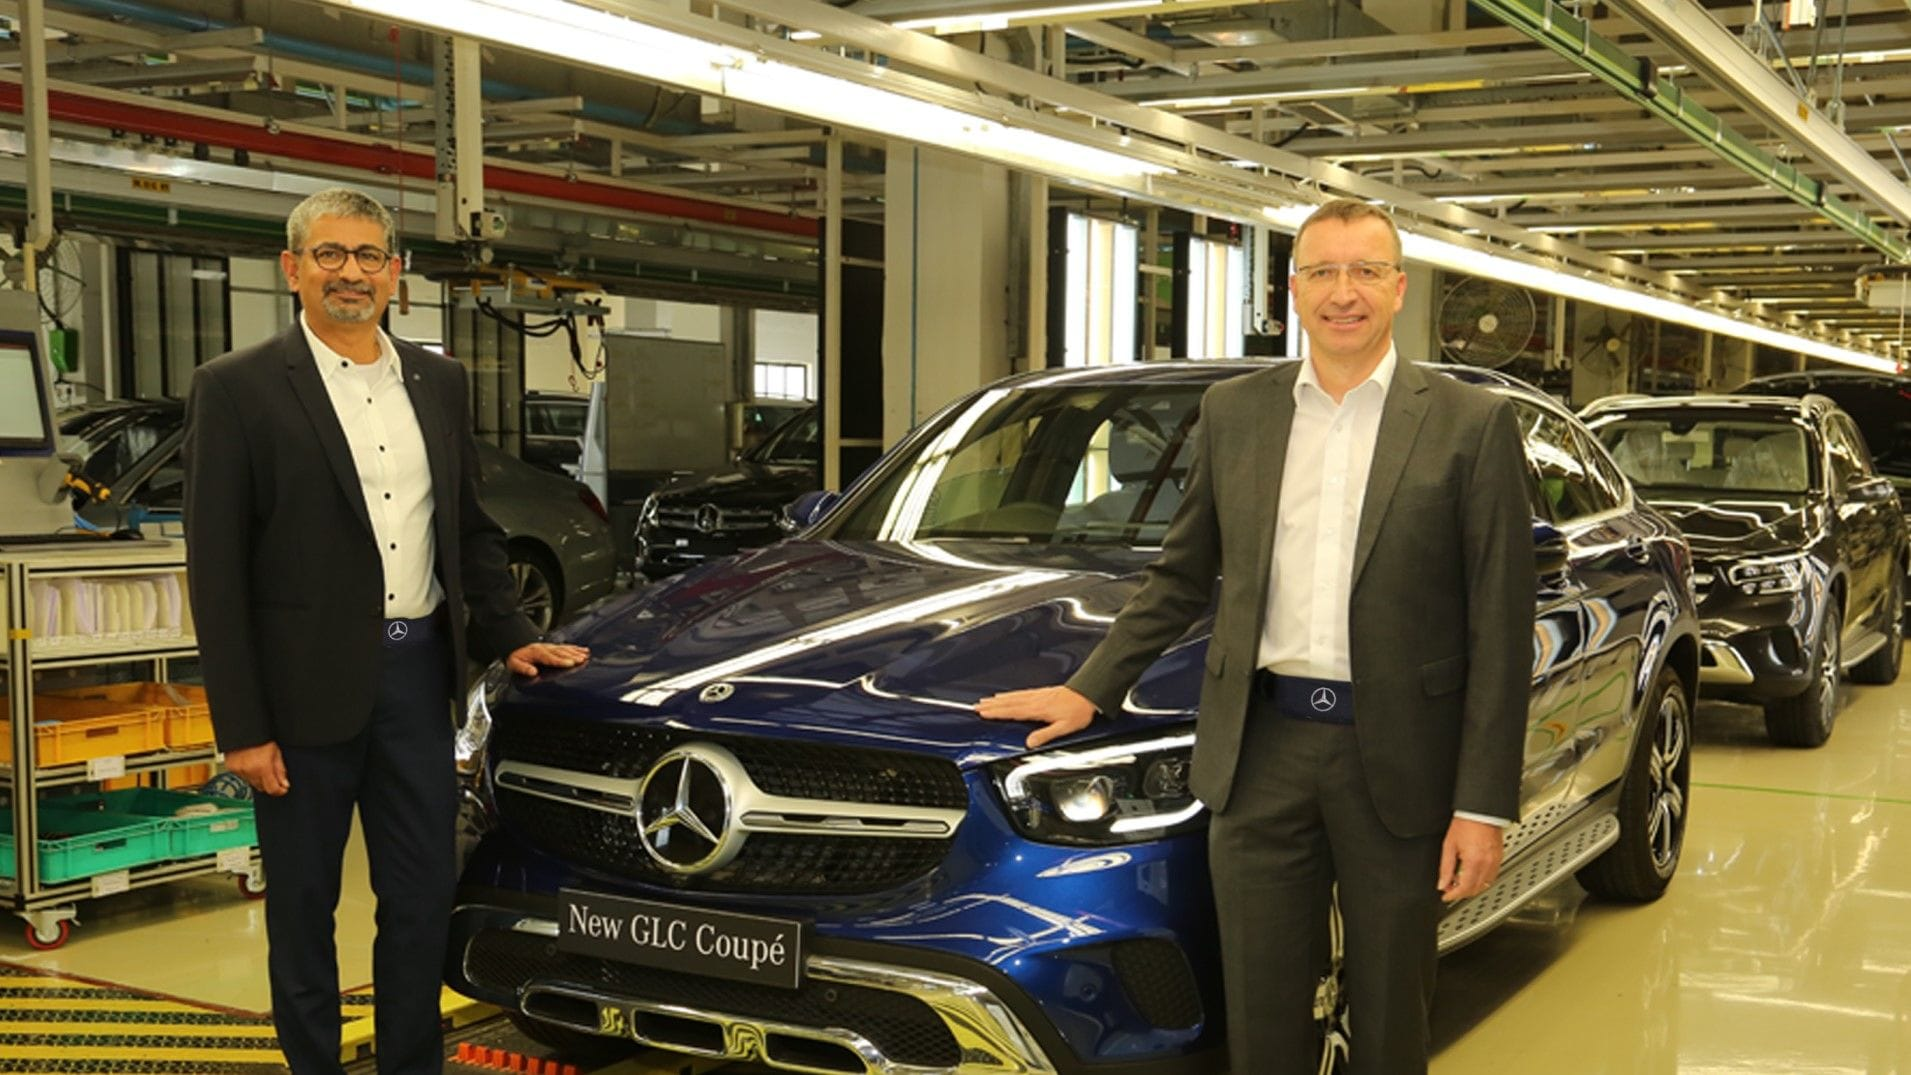 Mercedes-Benz India launched the sporty GLC Coupe SUV at  <span class='webrupee'>₹</span>62.70 lakh for the petrol variant and  <span class='webrupee'>₹</span>63.70 lakh for the diesel. It is the 10th product from the company through the CKD route in India.